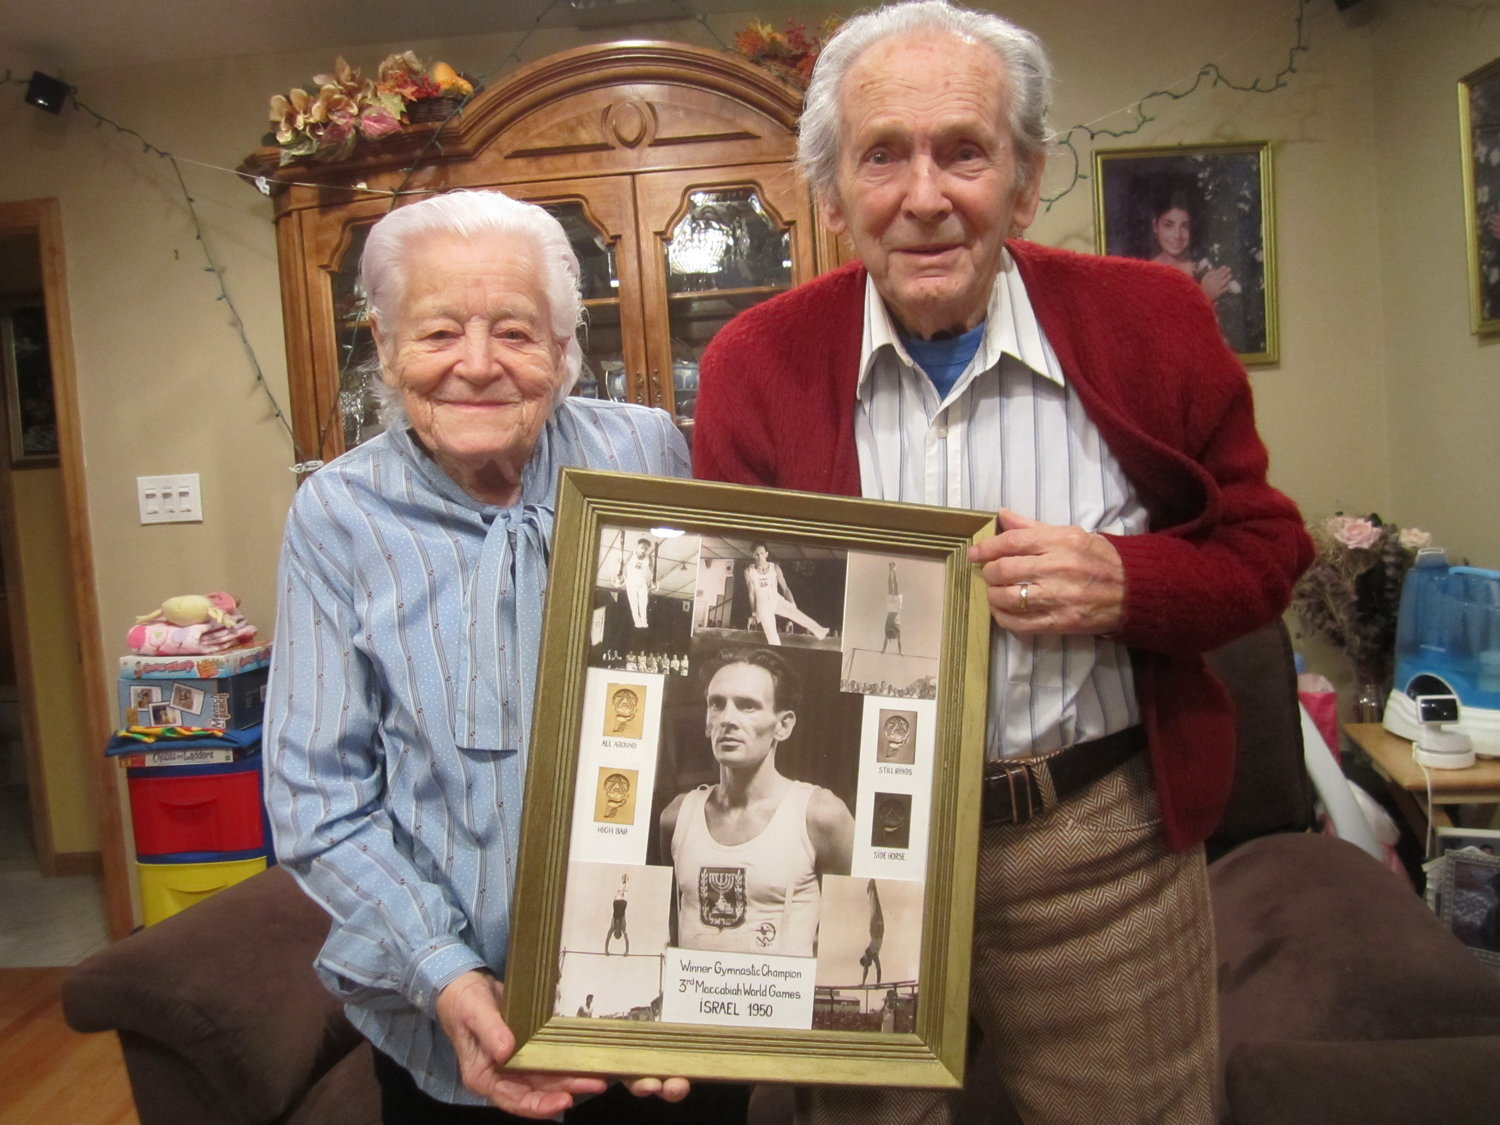 At their Merrick home, Walter Schacherl and his wife, Ryfka, proudly displayed photos of Walter competing in the 1950 Maccabiah Games — the first incarnation of the Olympics-style event after Israel was founded.